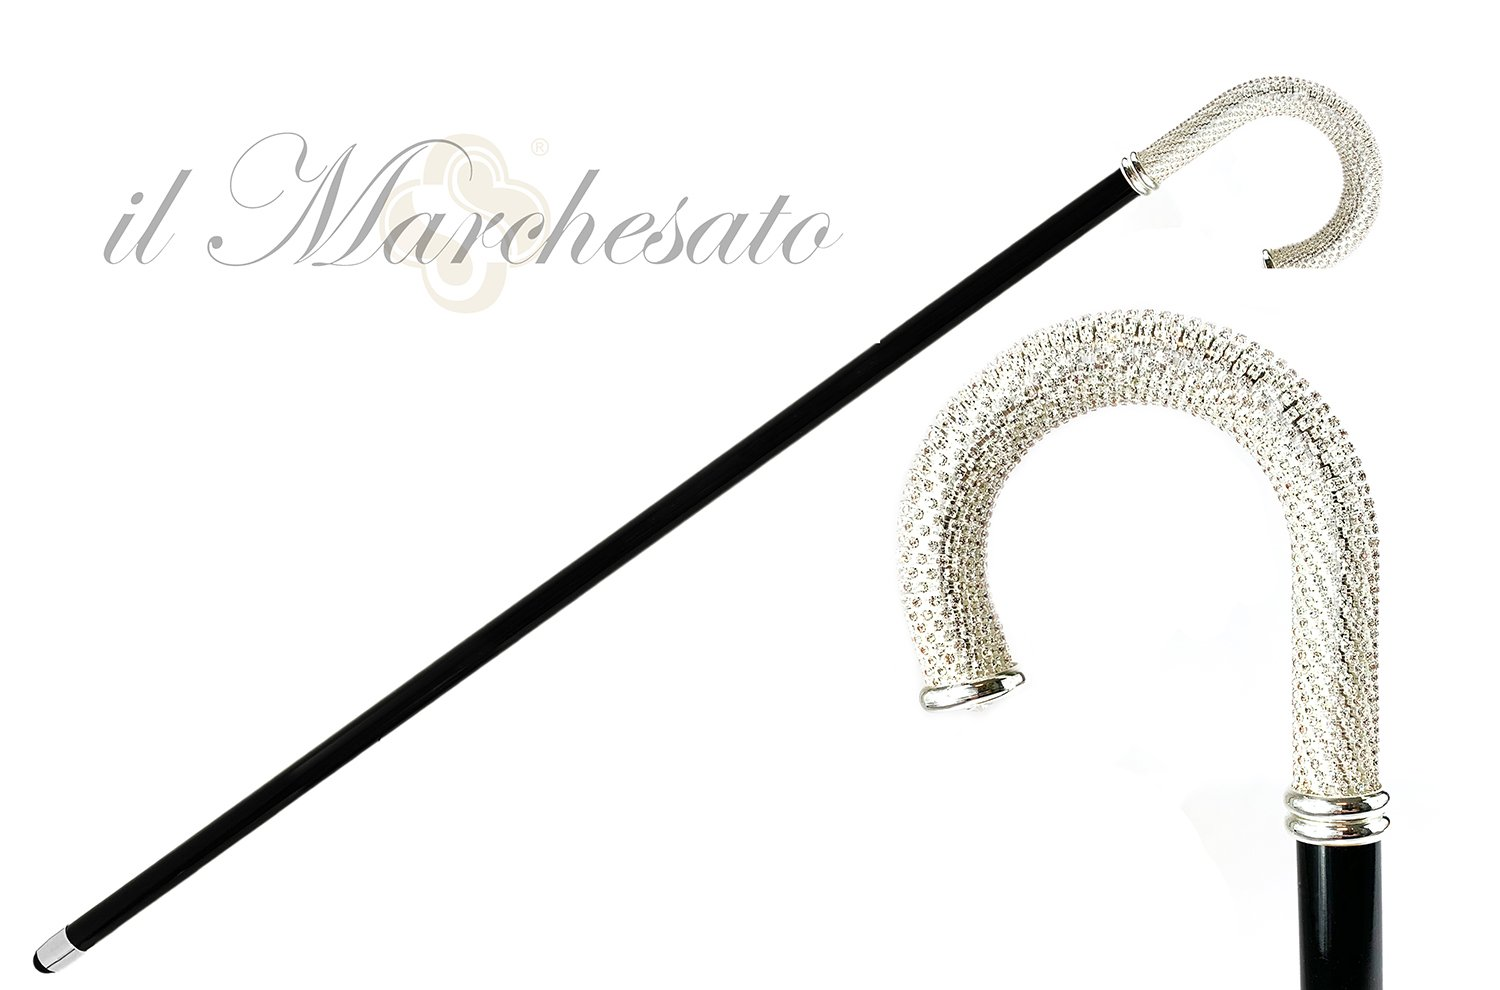 Luxury Walking stick for Man with thousands of white crystals - IL MARCHESATO LUXURY UMBRELLAS, CANES AND SHOEHORNS